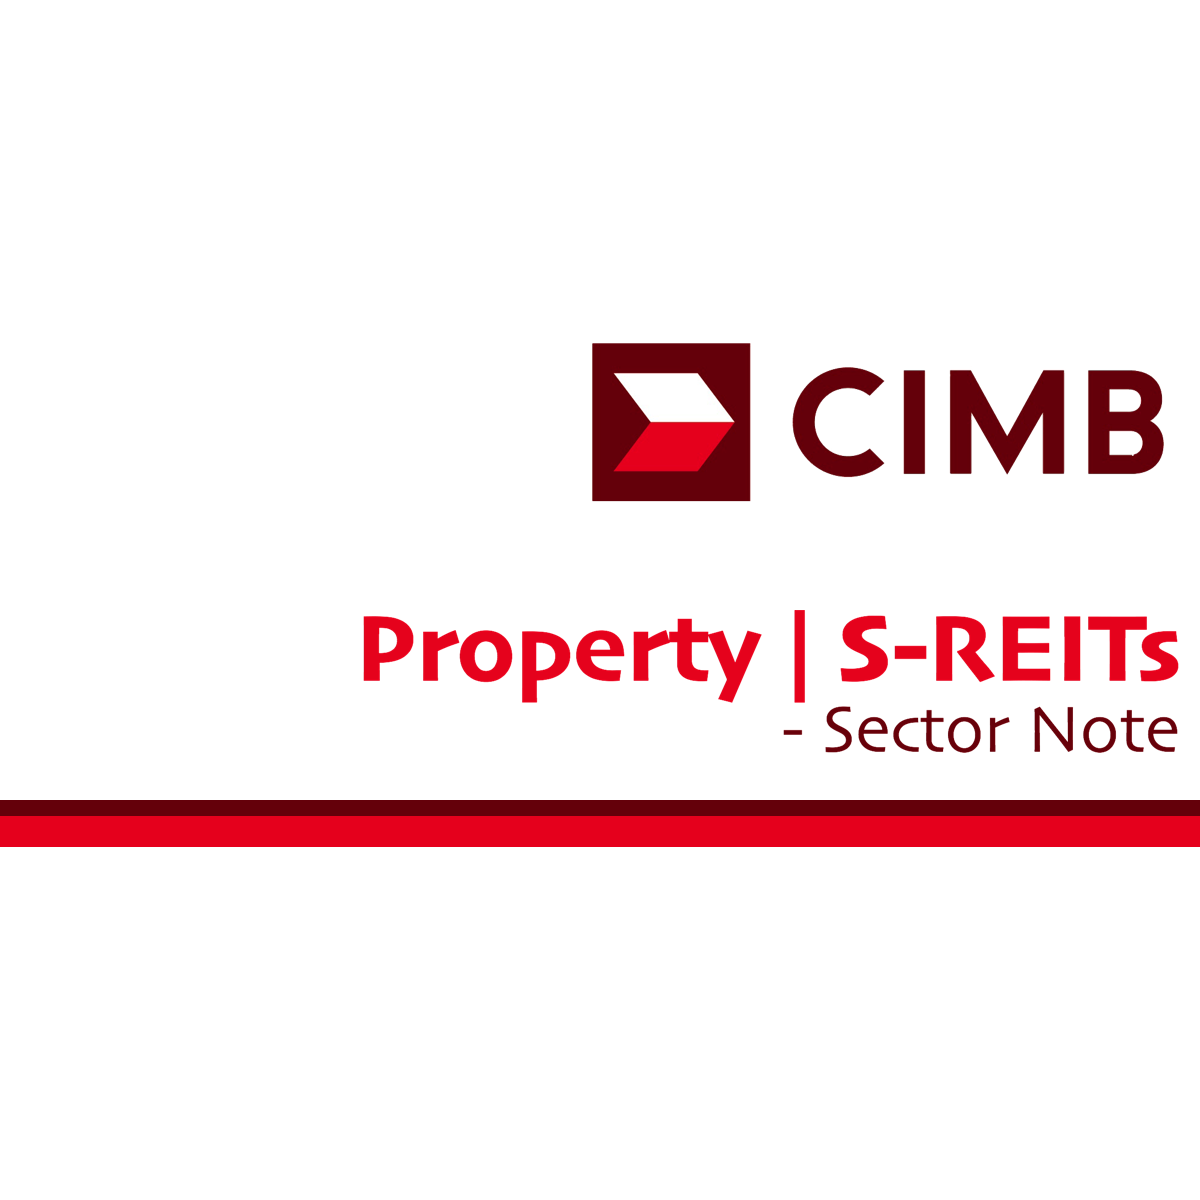 Property - Overall - CIMB Research 2017-07-17: Focus On Replacement Cost And Spot Rents